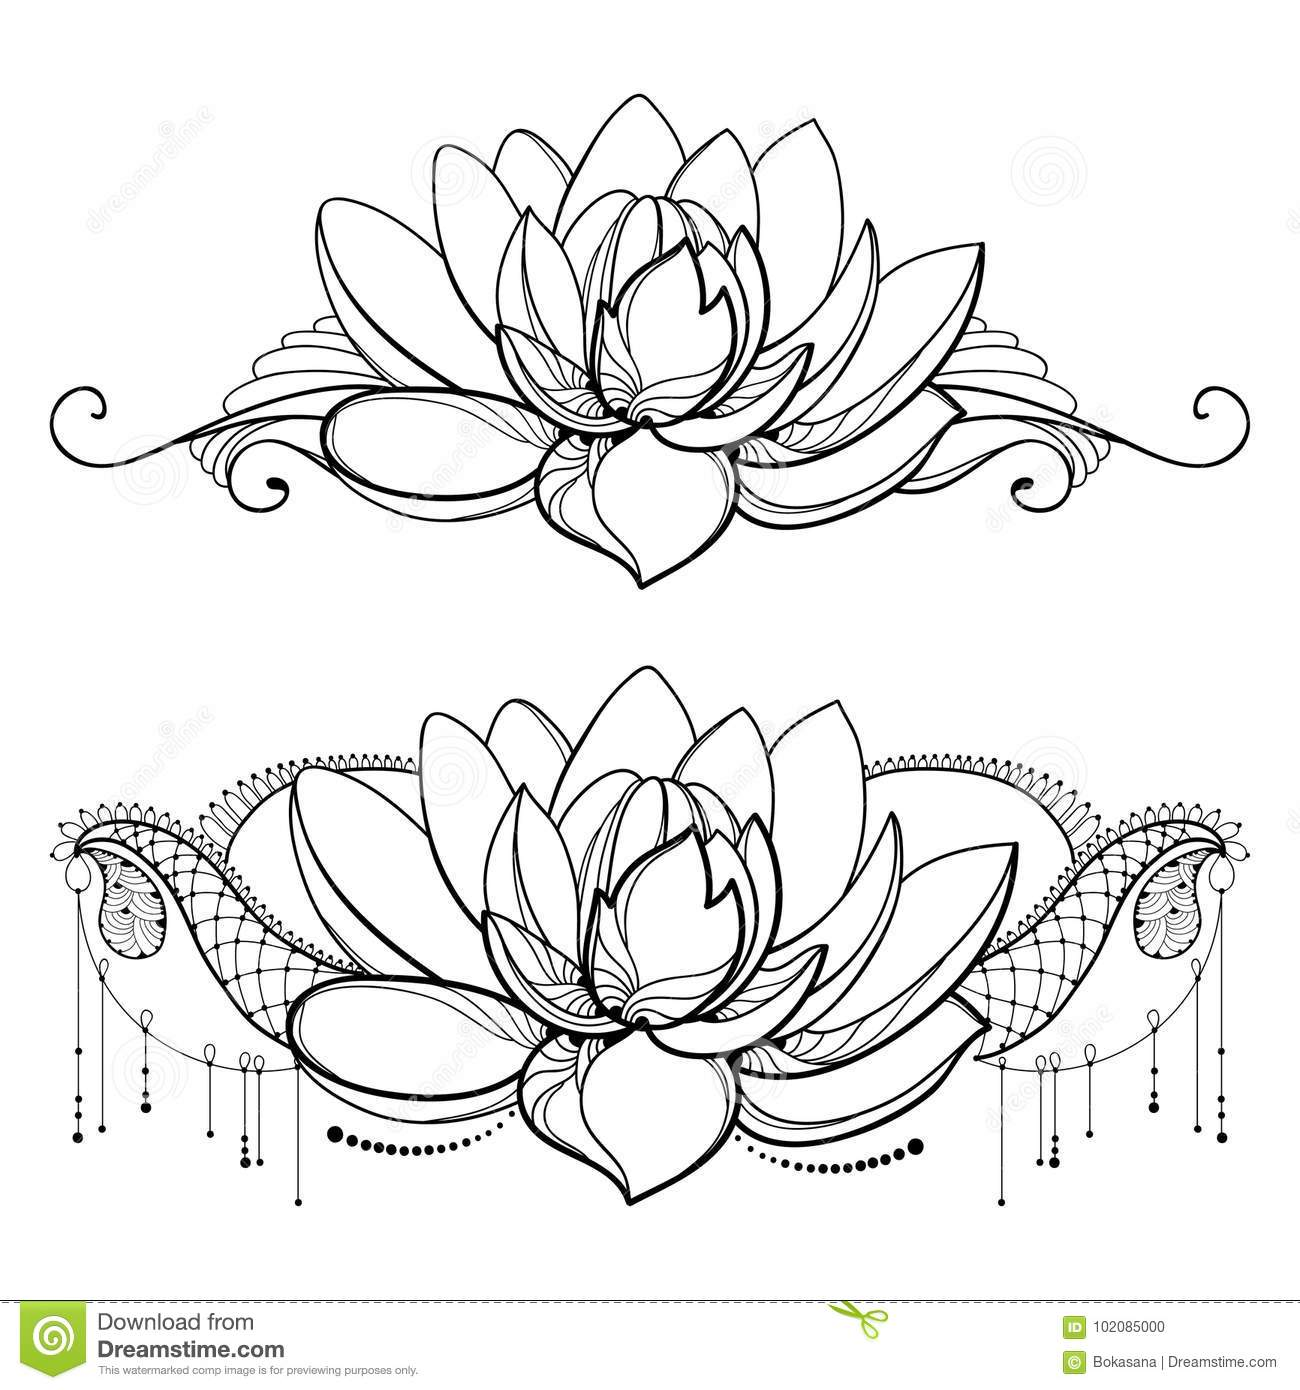 Vector Drawing With Outline Lotus Flower Decorative Lace And Swirls